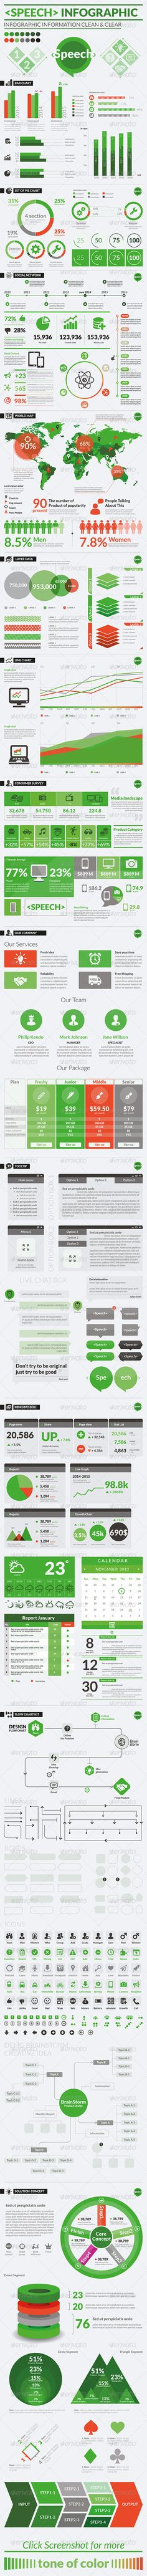 <Speech> Infographic This is a set of infographic elements Templates & Vector Kits To Design Your Own Infographic The color scheme used is of a Modern and Clean type but can be changed to anyth...